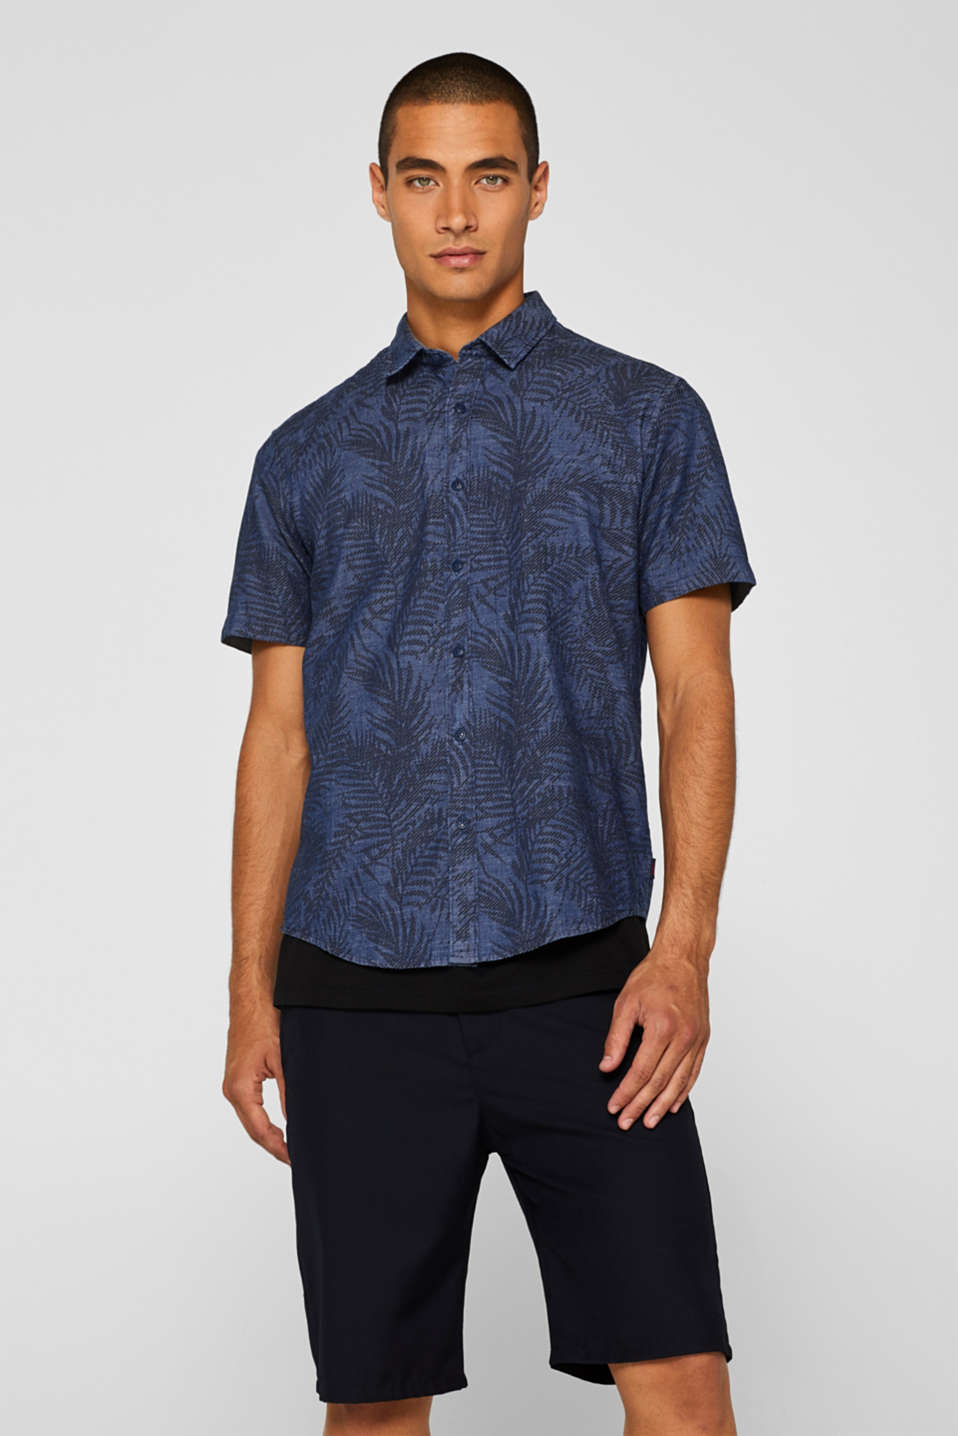 Esprit - Short sleeve shirt with tropical print, 100% cotton